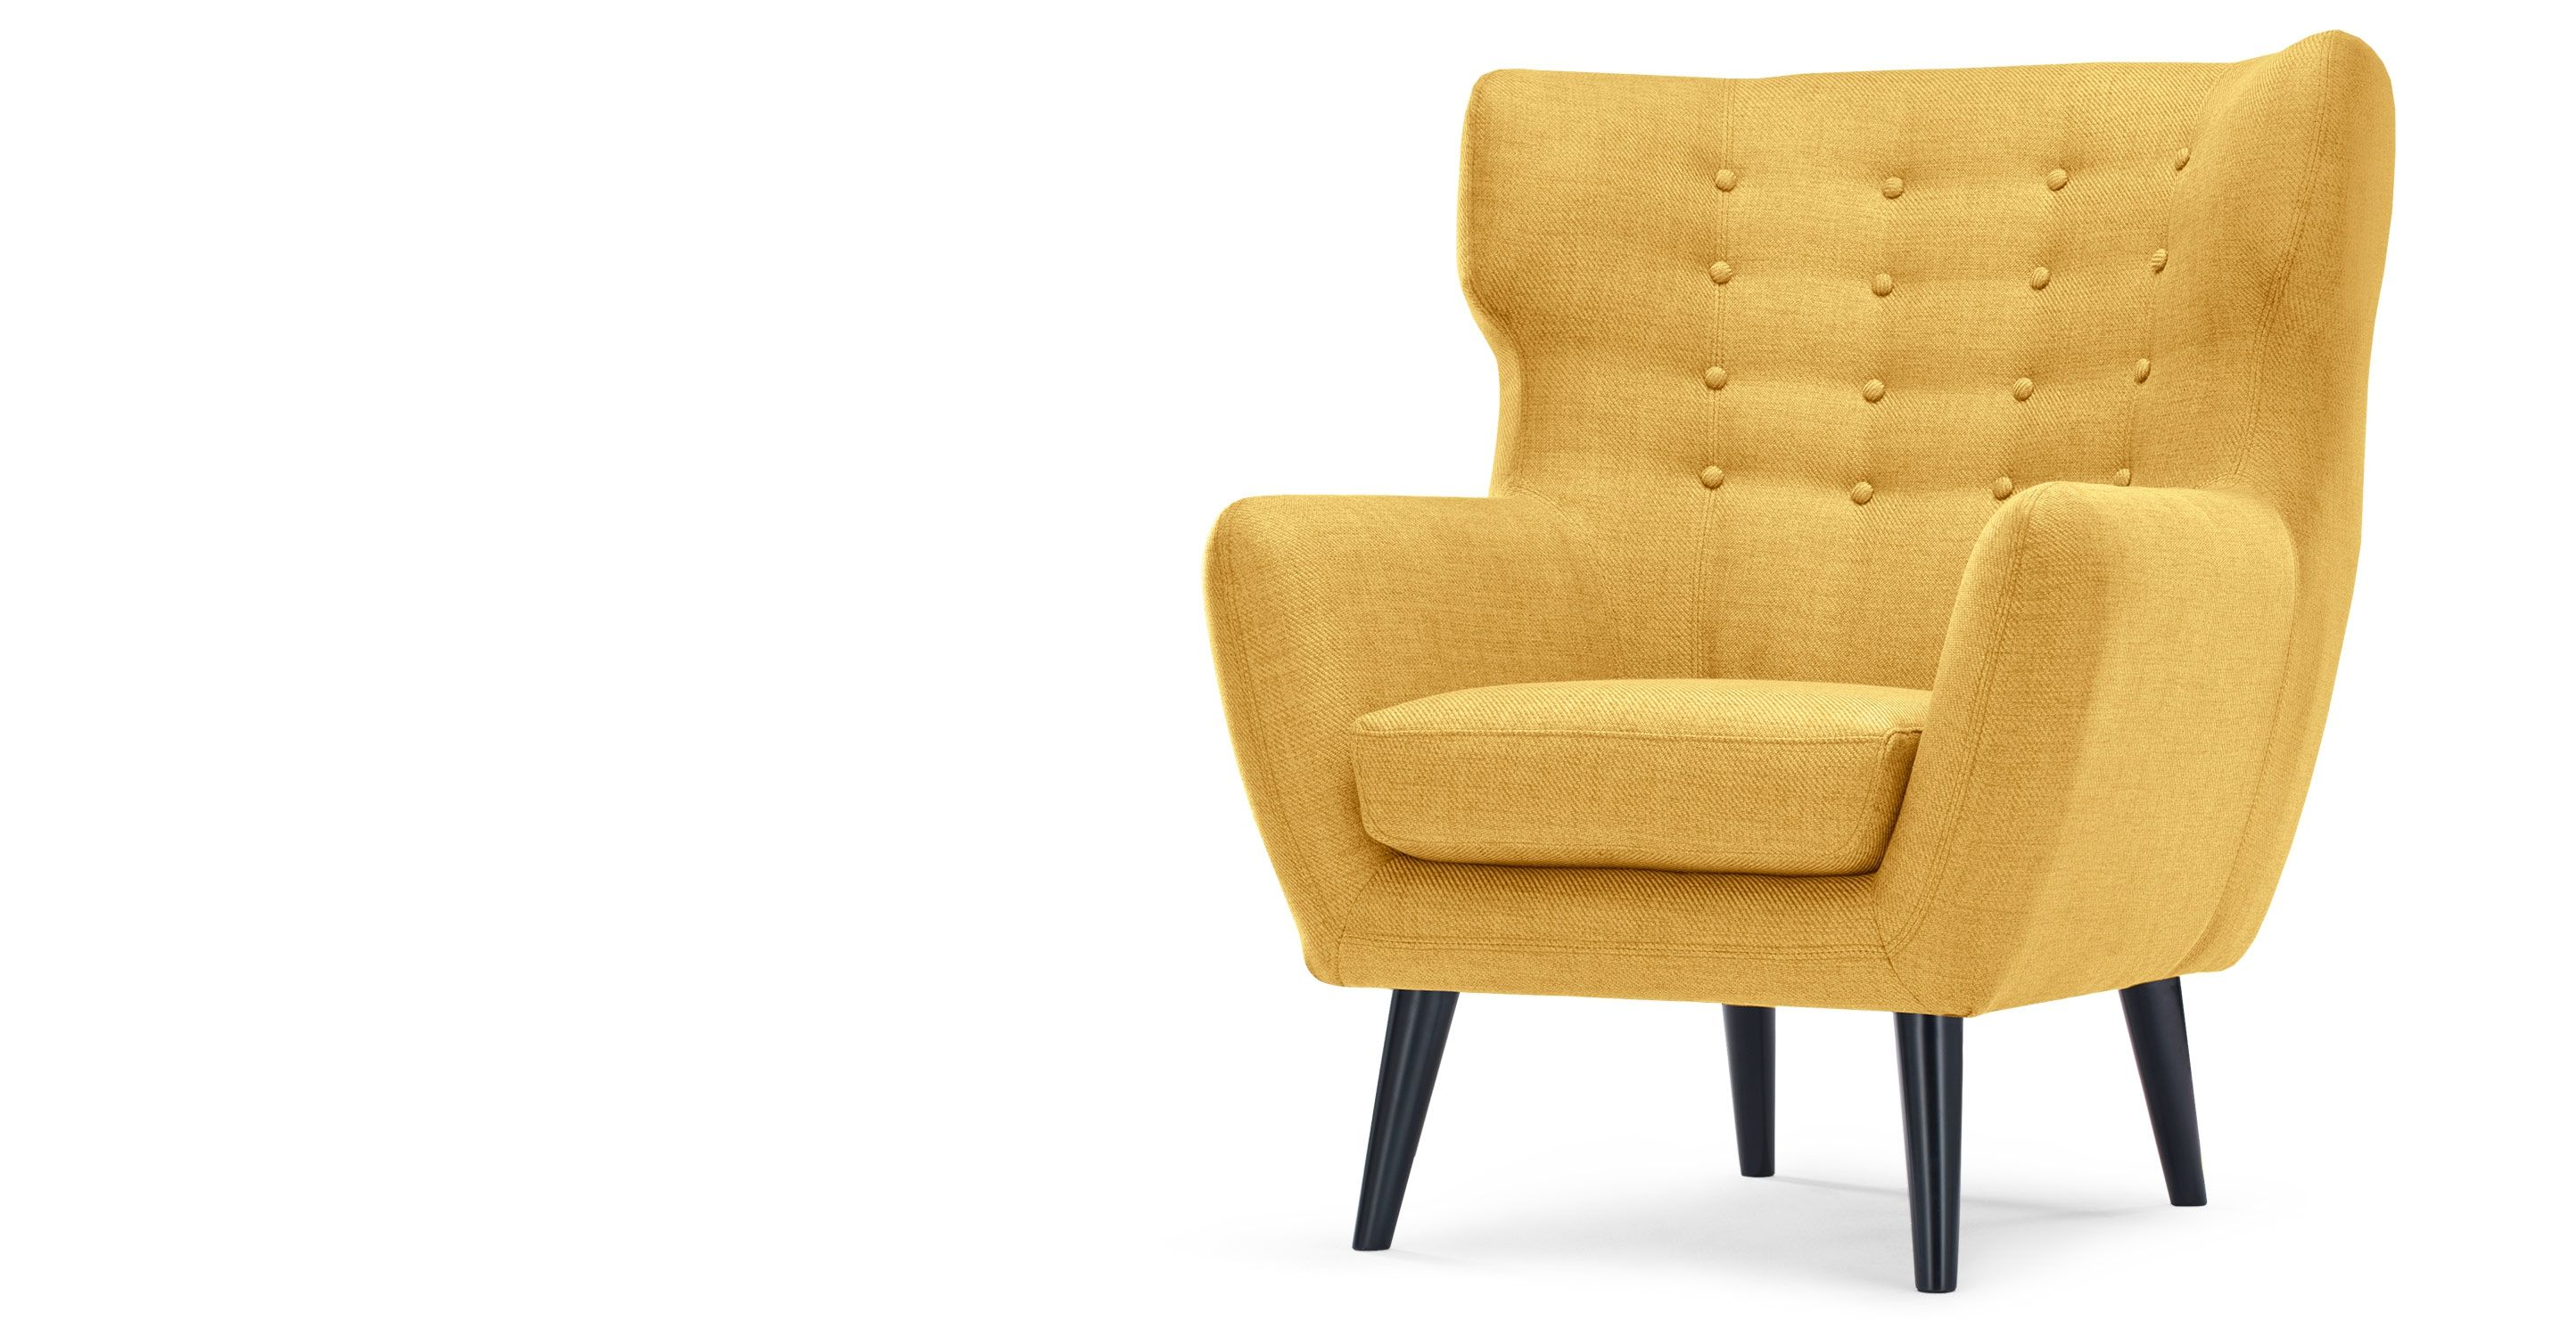 armchairs extraordinary ebay of sale for chairs leather armchair superb yellow on rbric uk dining accent mustard also chair adorable